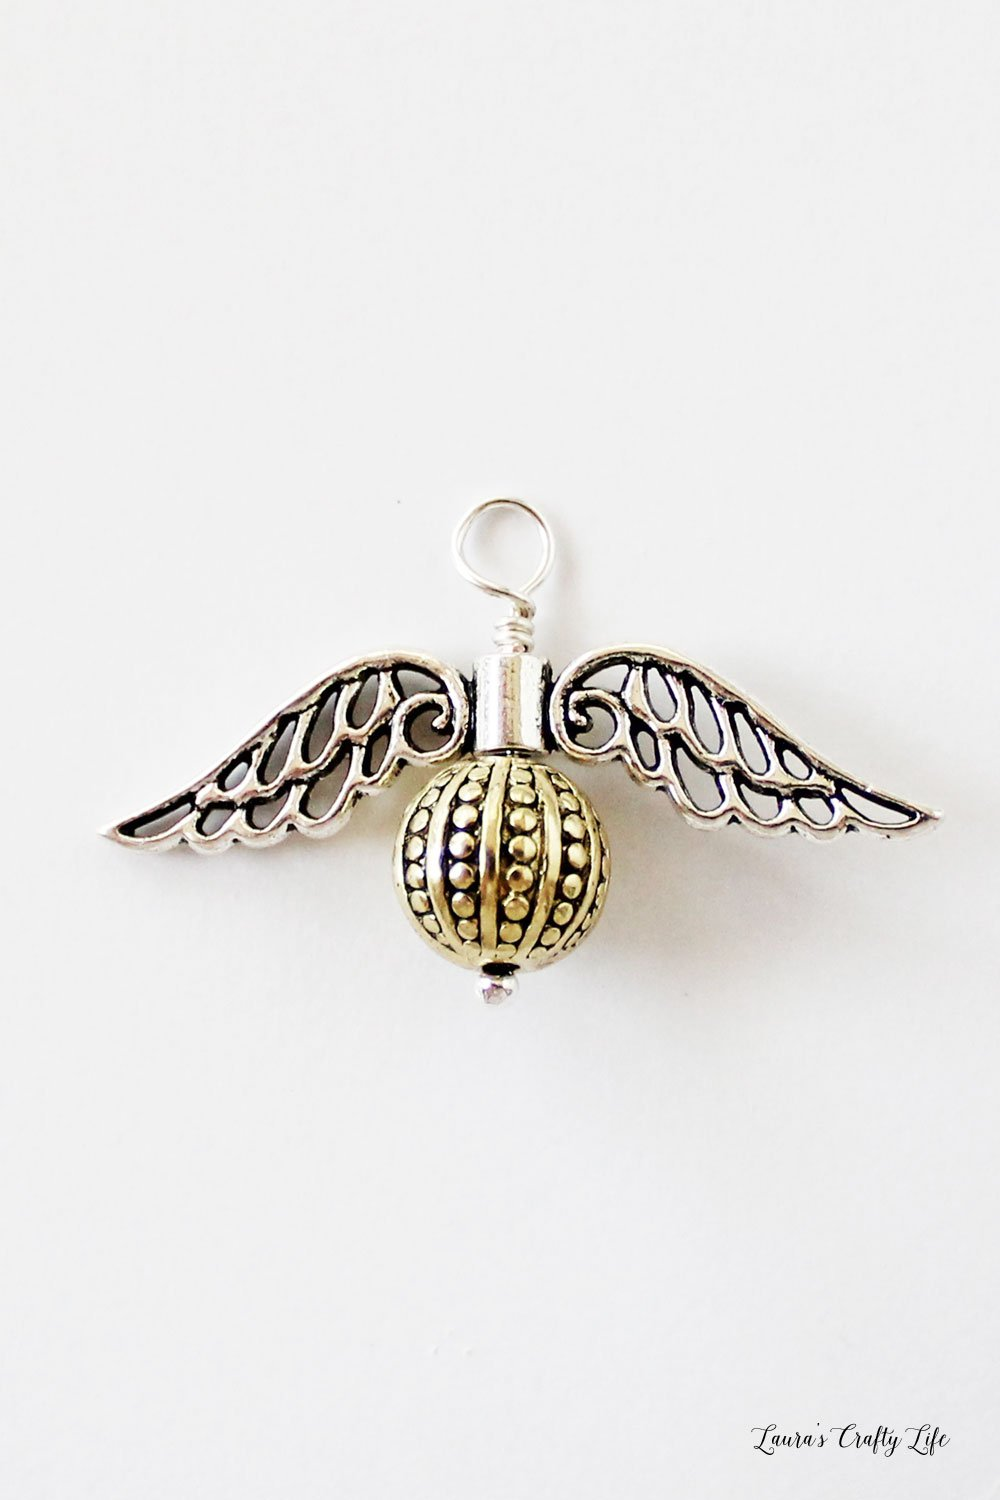 How to create a wire wrapped golden snitch charm #harrypotter #jewelry #charm #laurascraftylife